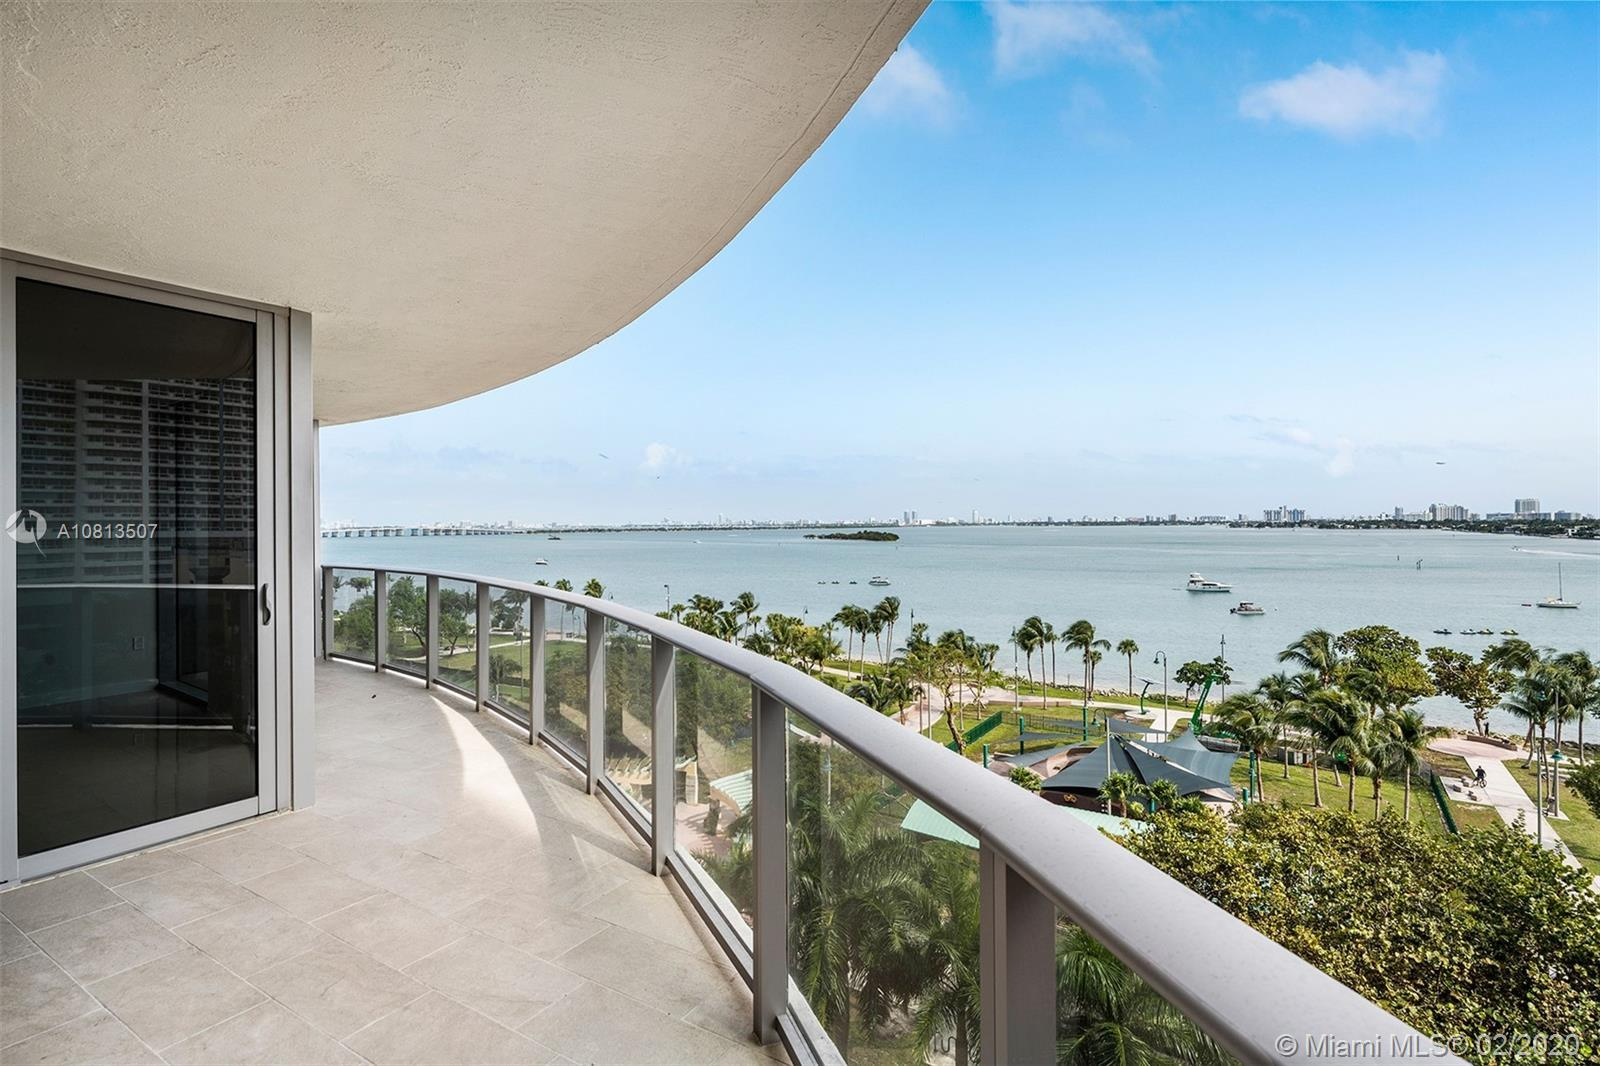 Welcome to Aria on the Bay, situated in the highly coveted neighborhood of Edgewater. Featuring an a